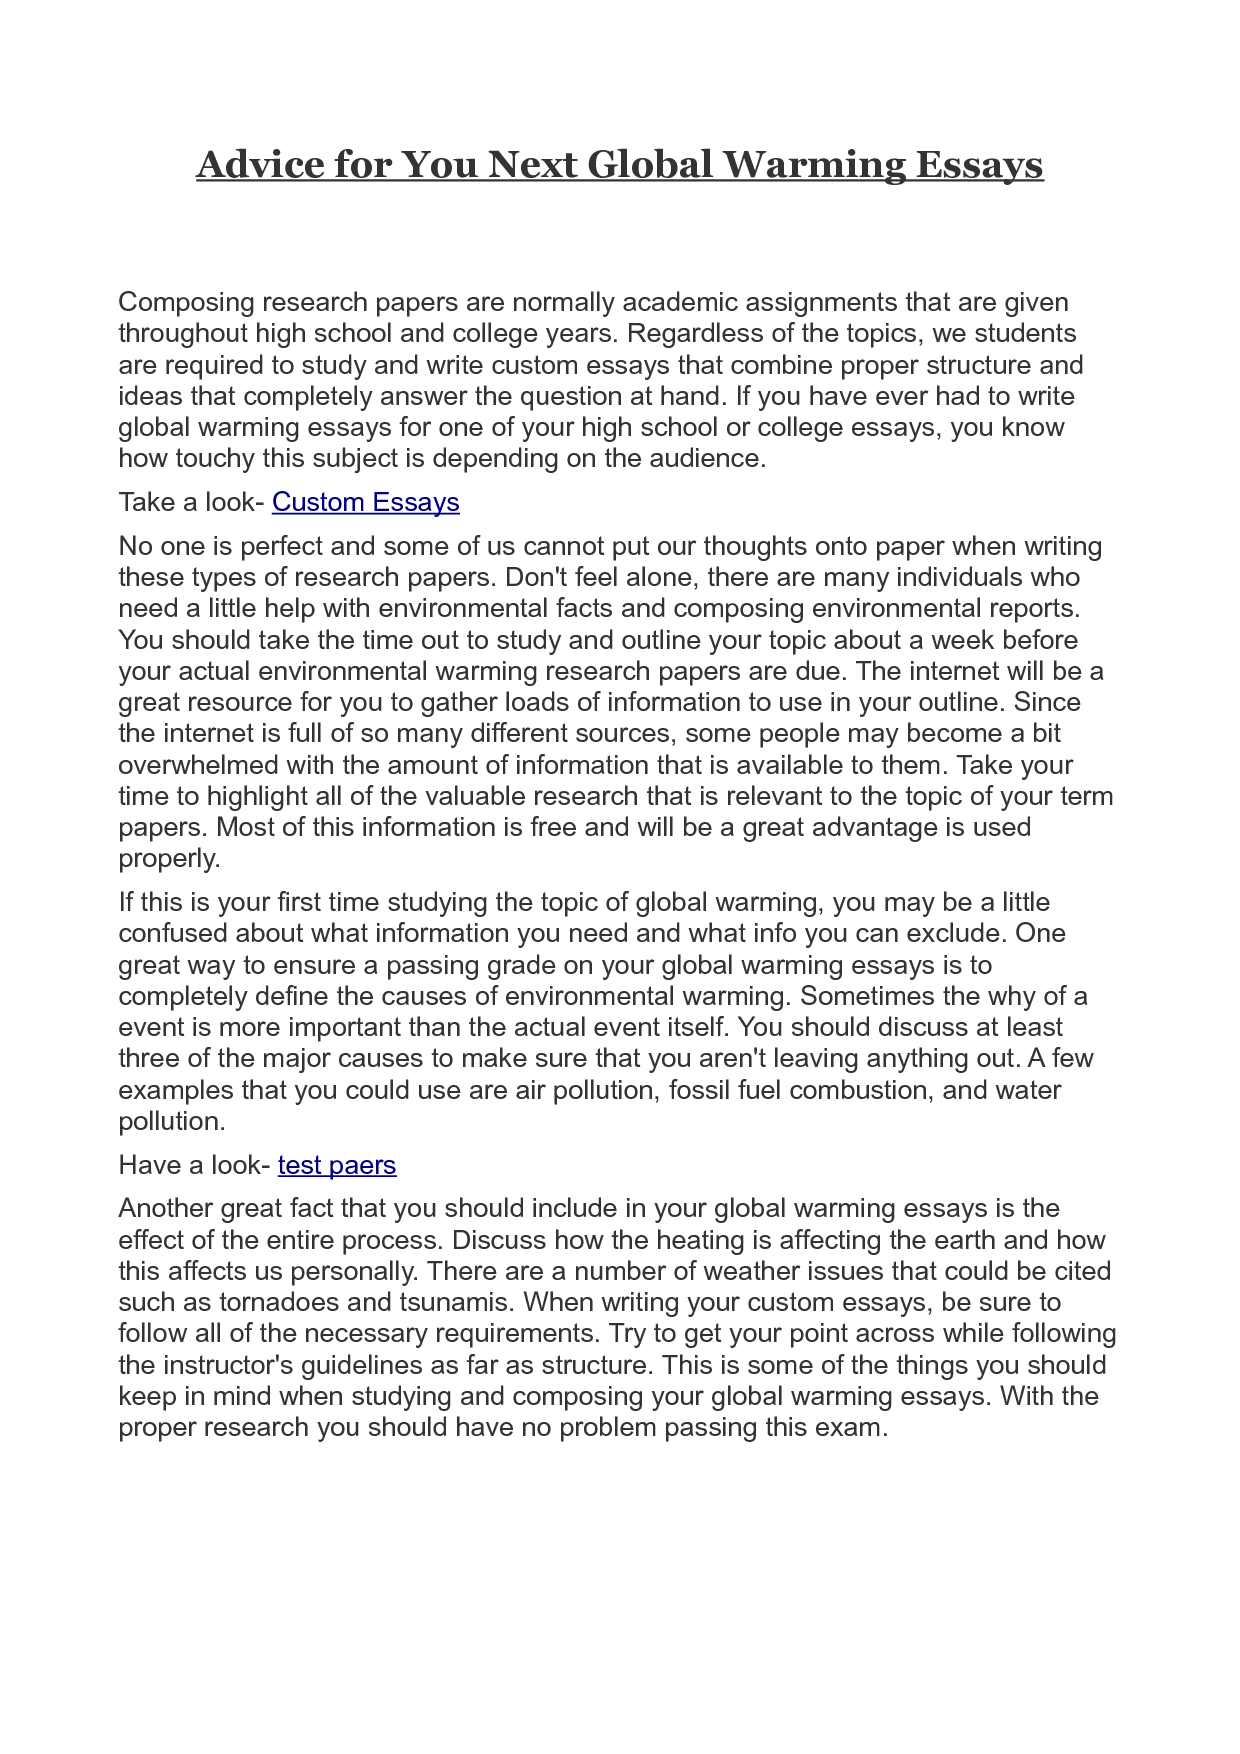 002 Essay Example On Global Warming Impressive With Introduction And Conclusion Greenhouse Effect In 600 Words Full